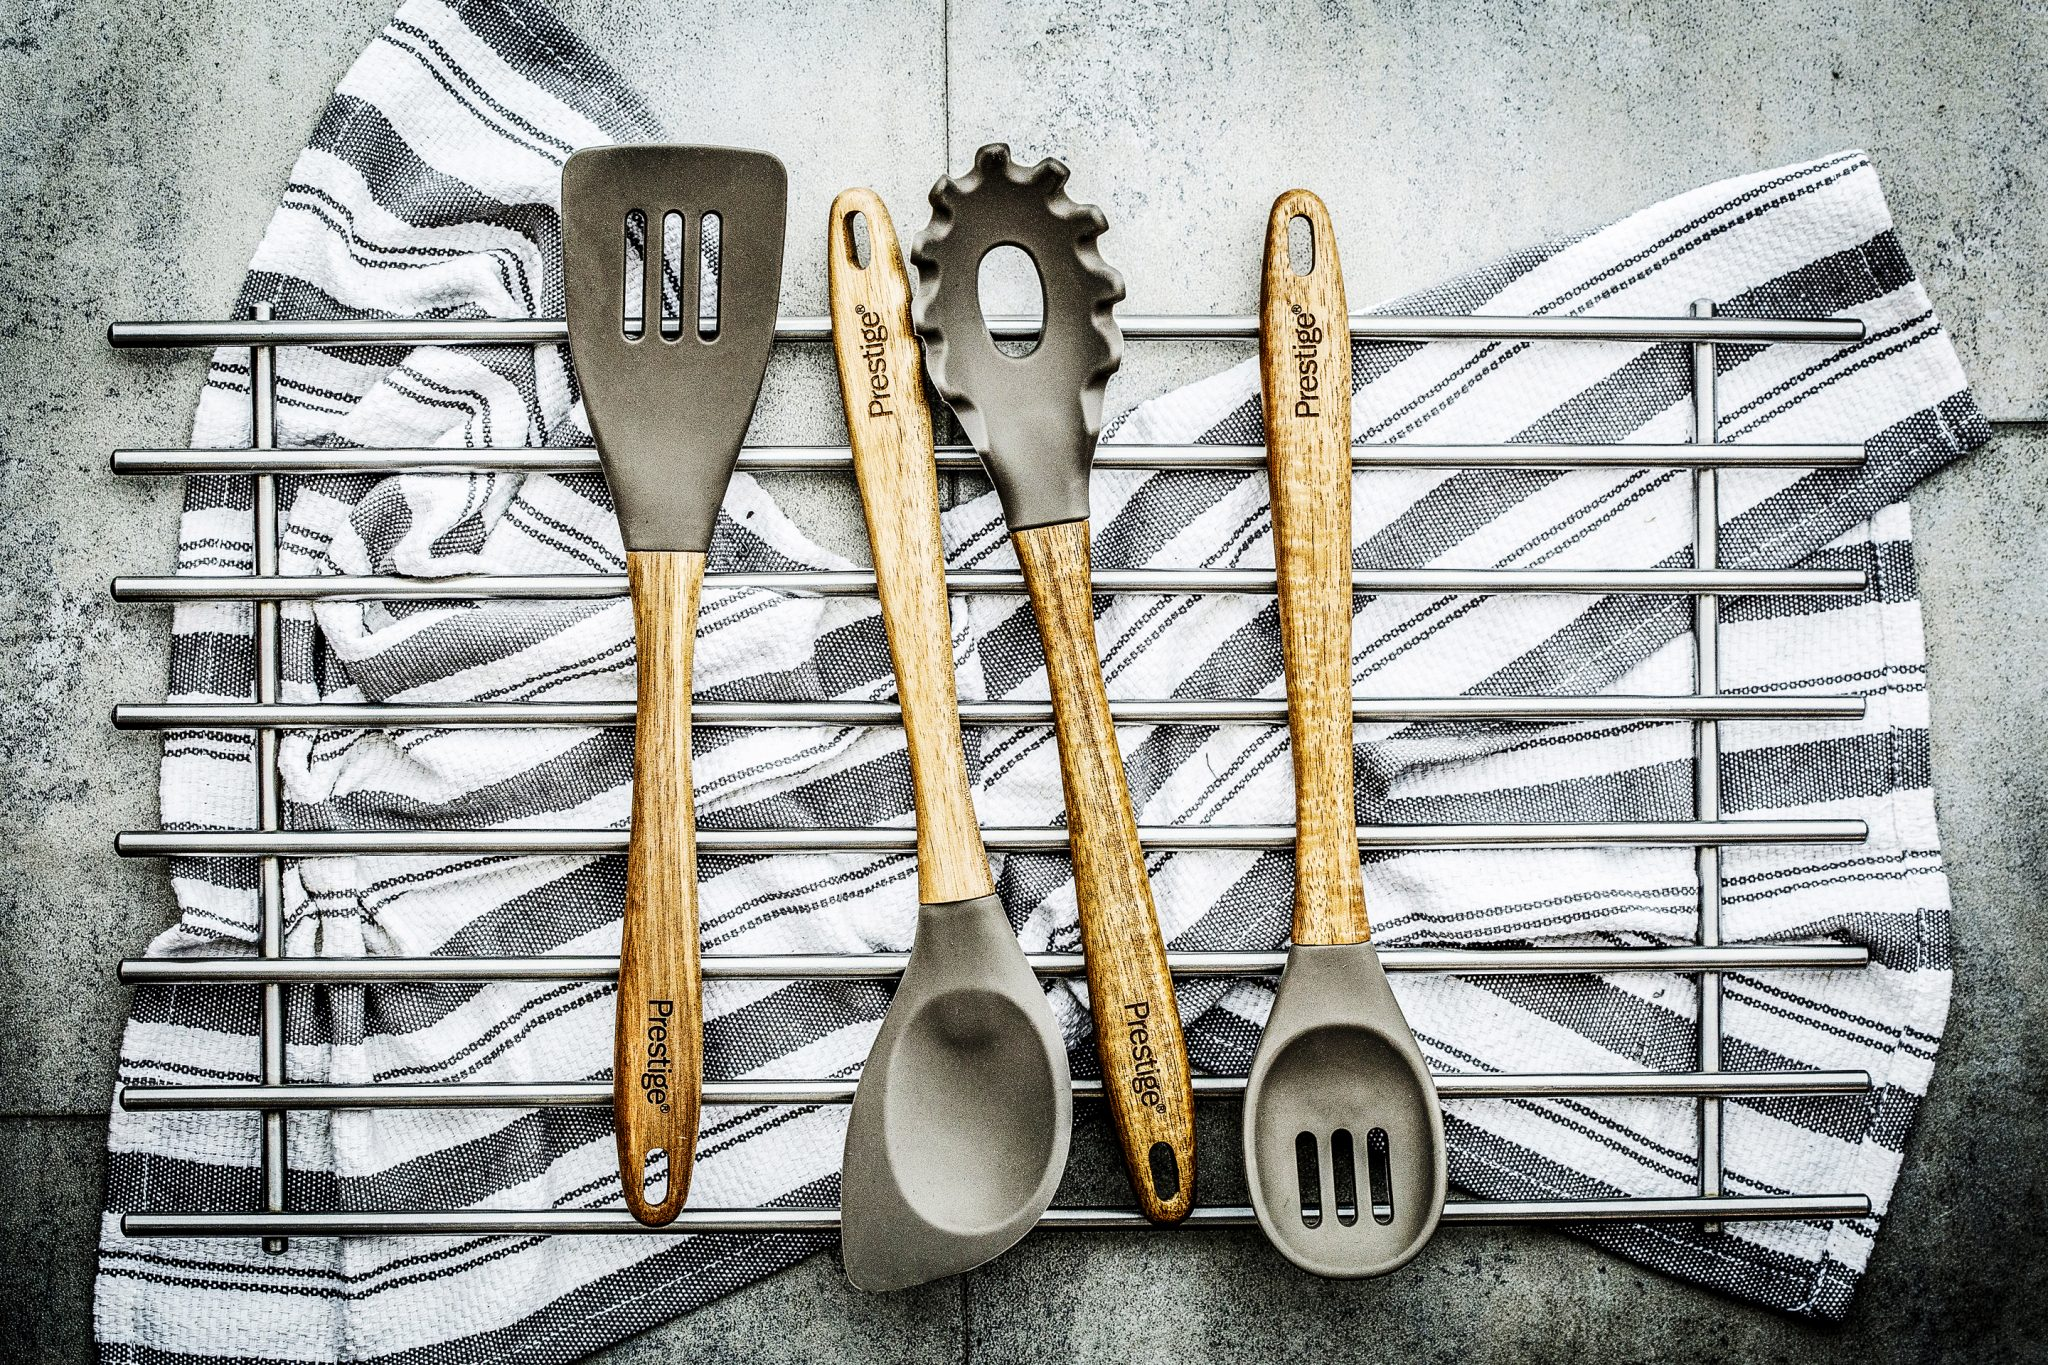 product-photography-for-meyer-cookware-